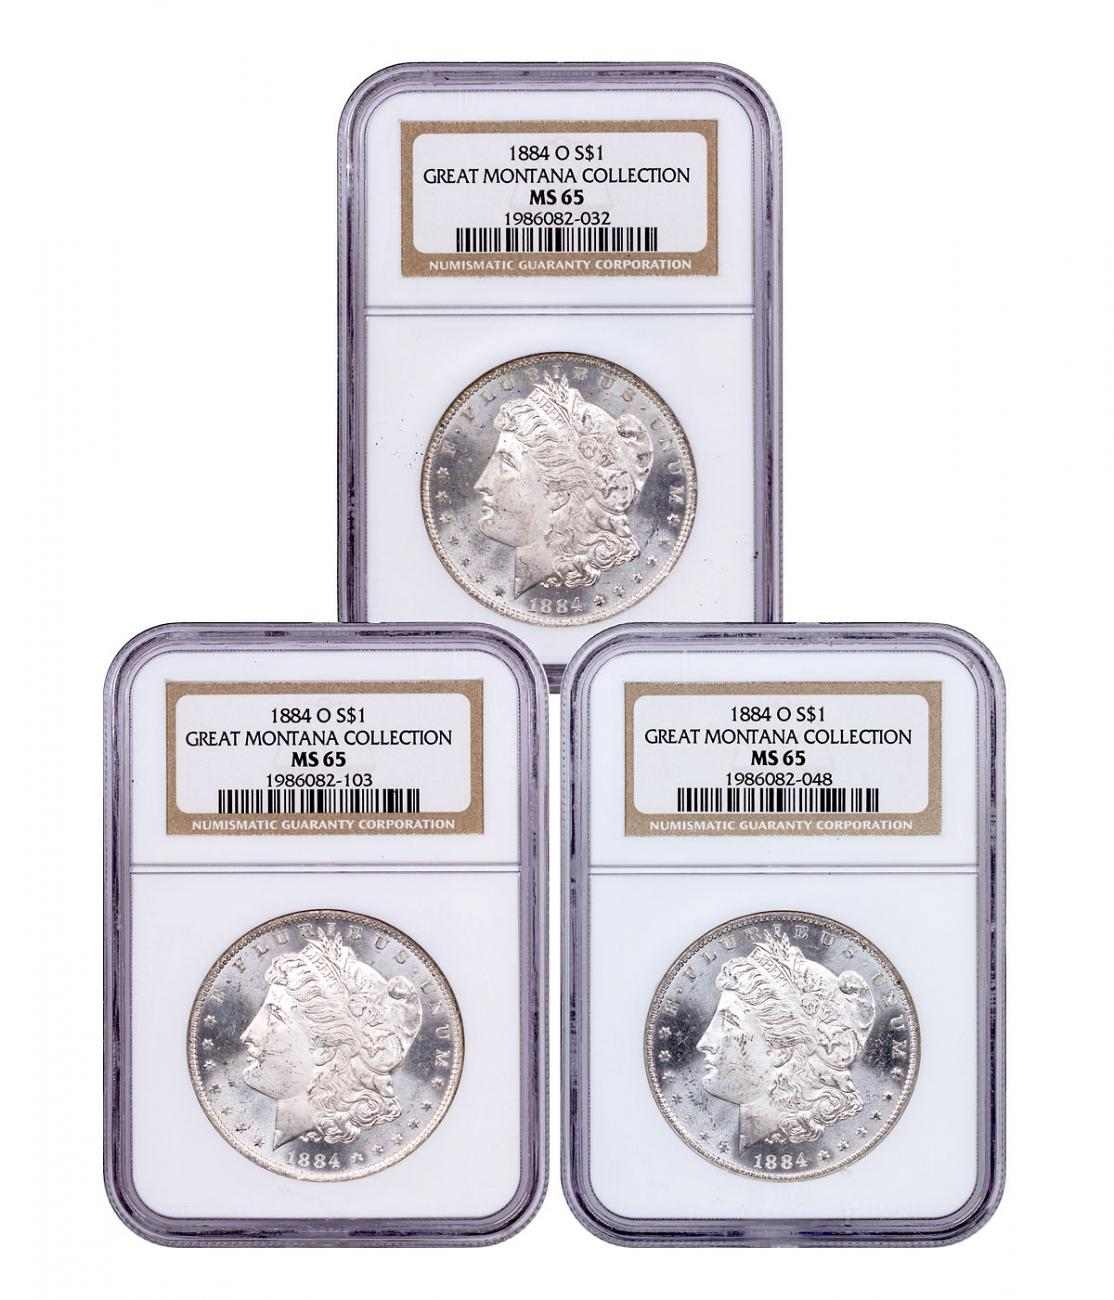 3-Coin Set - 1884-O Morgan Silver Dollar From the Great Montana Collection NGC MS65 Toned CPCR 2032